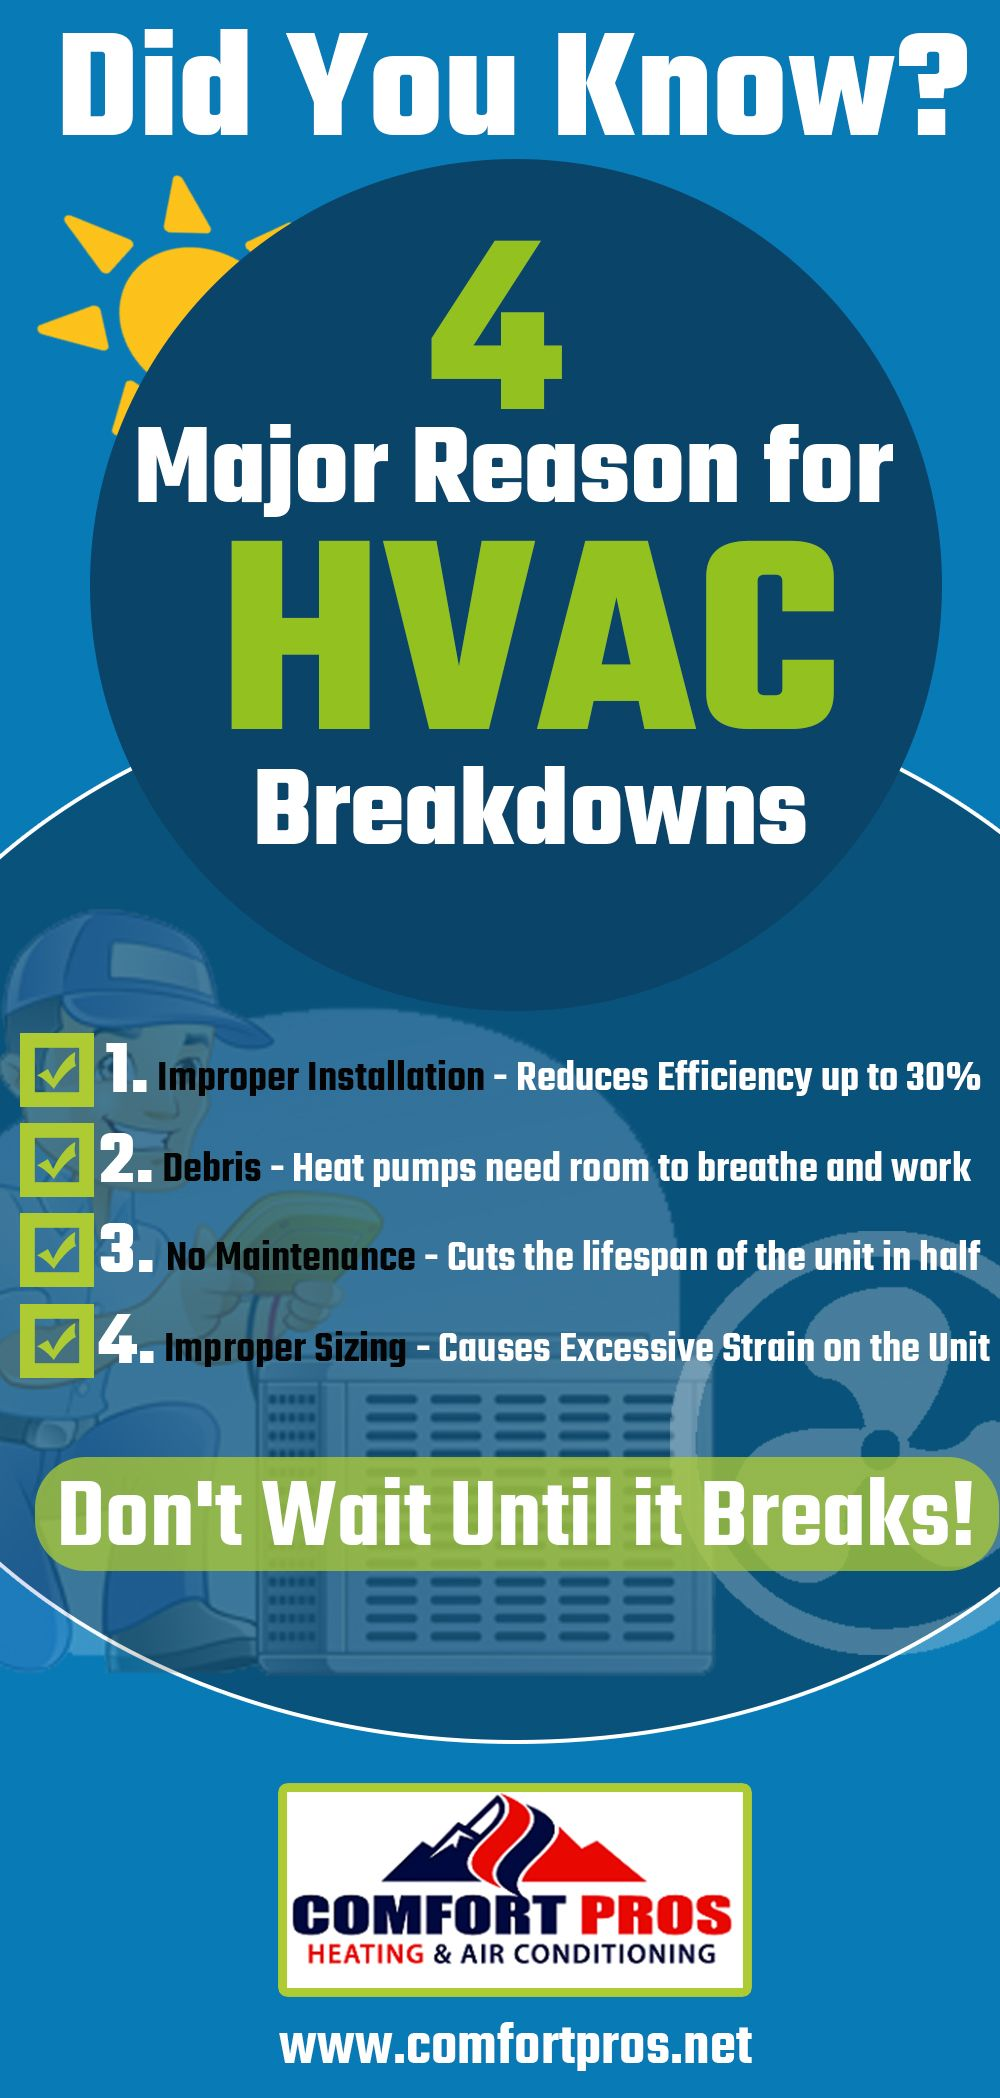 The 4 Major Reason For Hvac Breakdowns Heating And Air